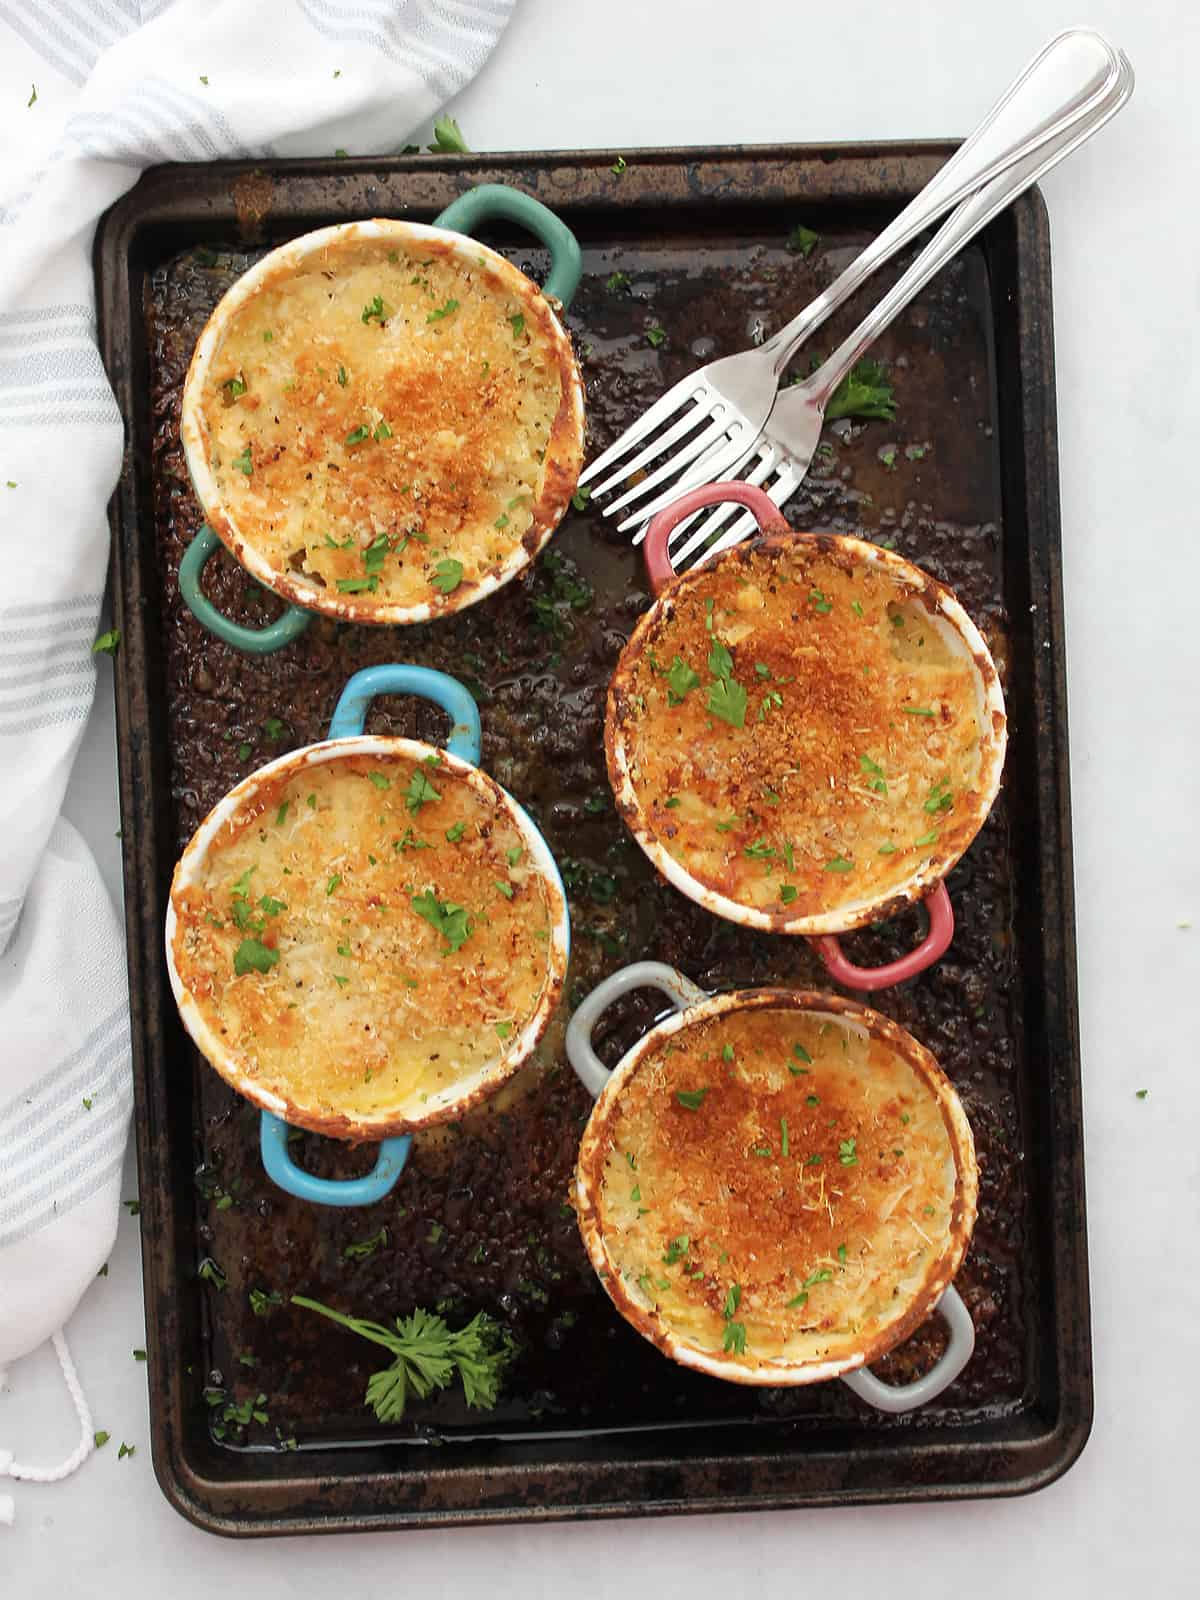 Four individual potato gratins on a baking sheet and garnished with fresh herbs.